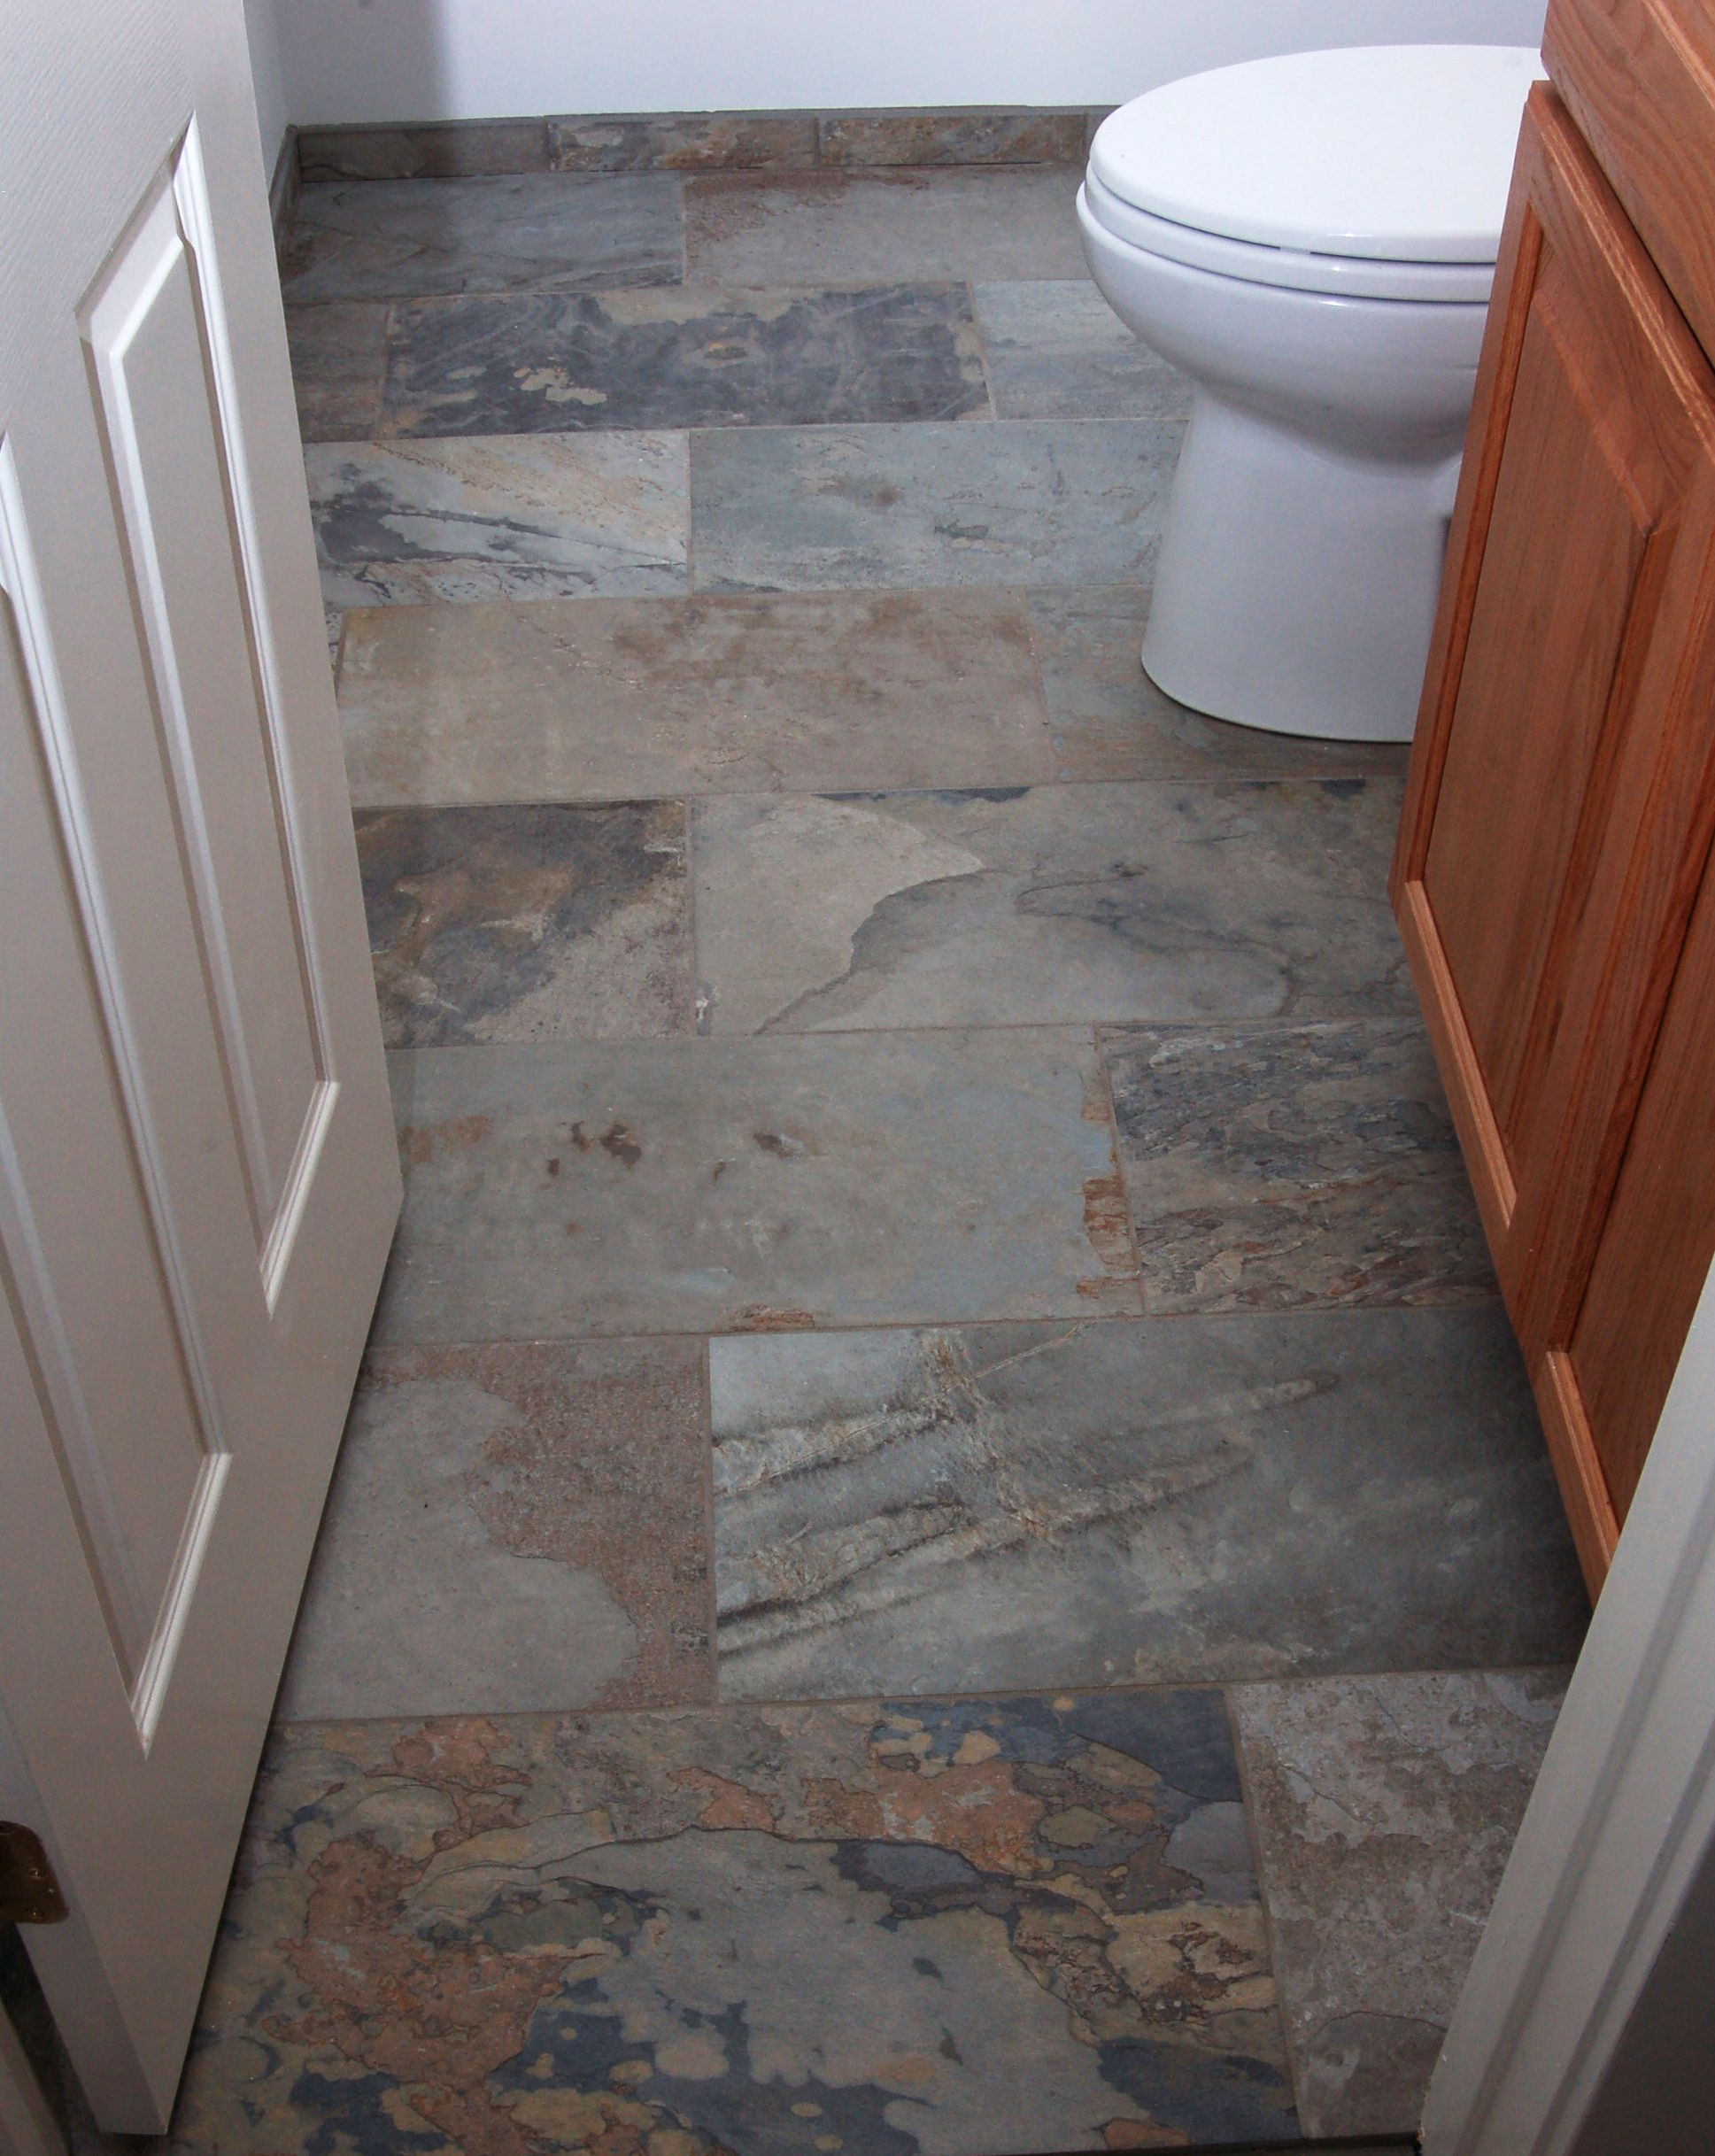 Floor tile debate: stone vs. porcelain